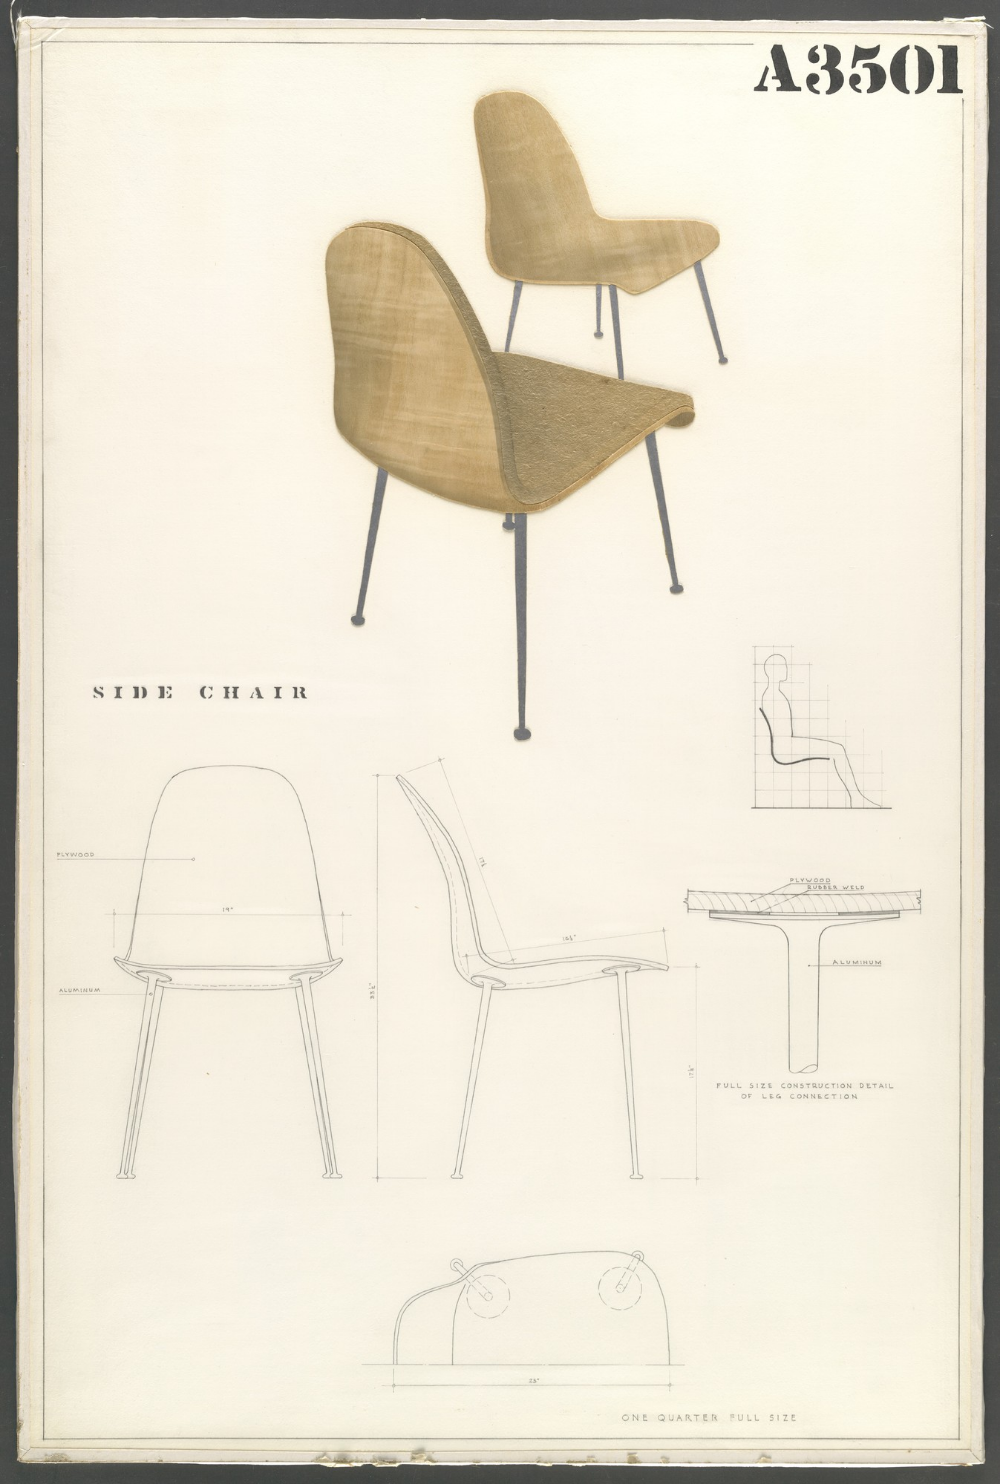 Charles Eames Eero Saarinen Side Chair Entry Panel For Moma Competition For Organic Design In Home Furnishings In 2020 Charles Eames Eero Saarinen Organic Design